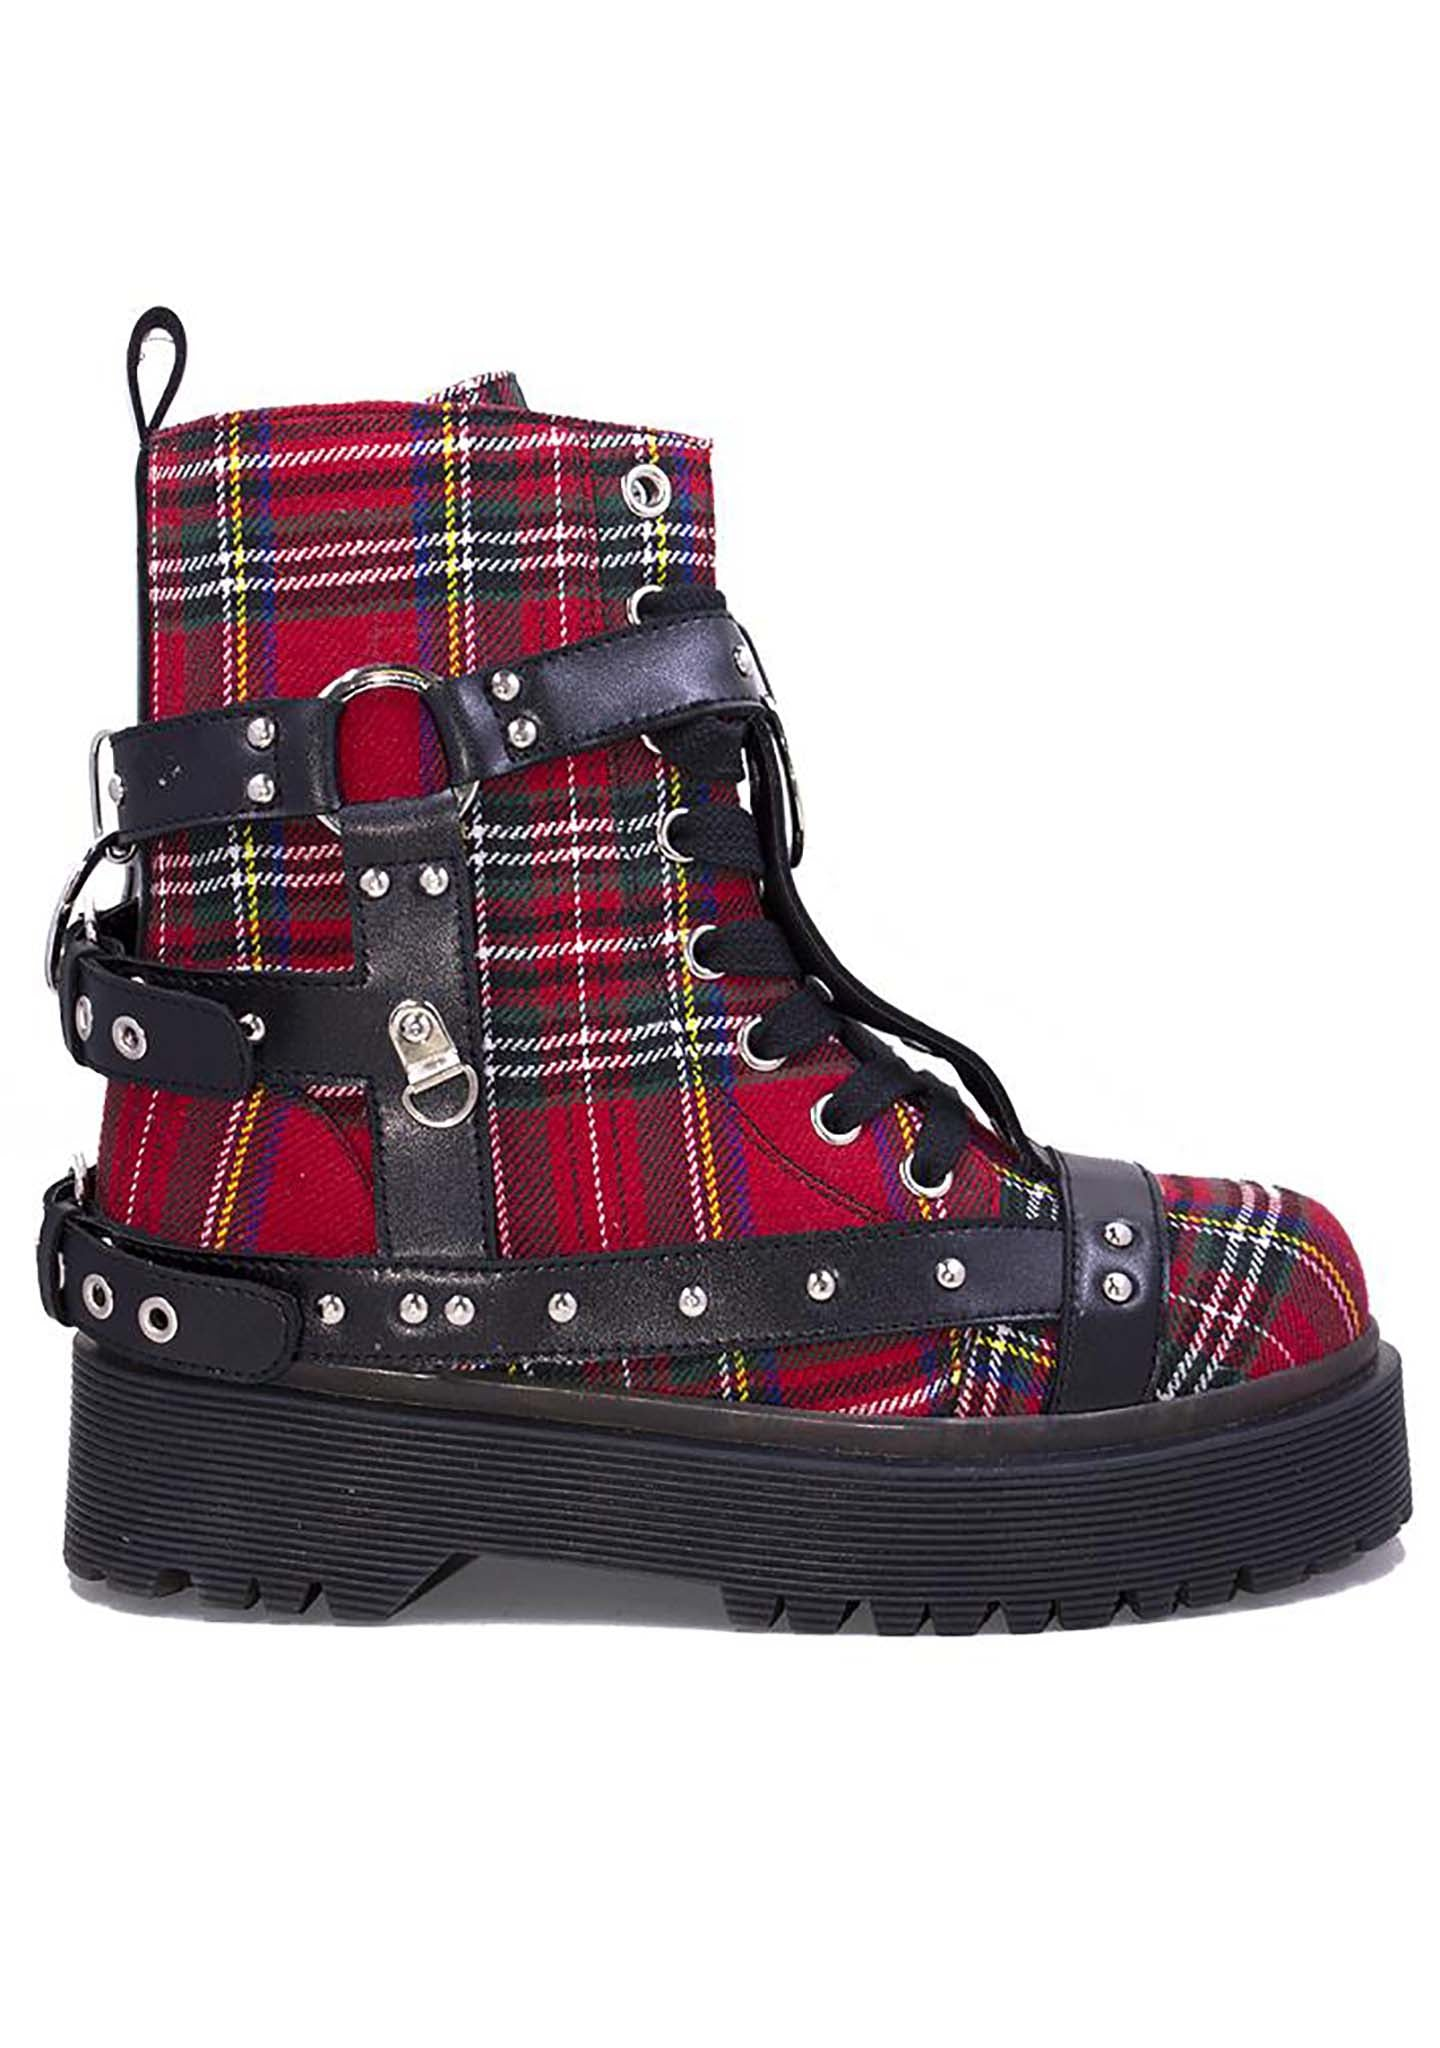 Disorder Bondage Boots in Red Plaid